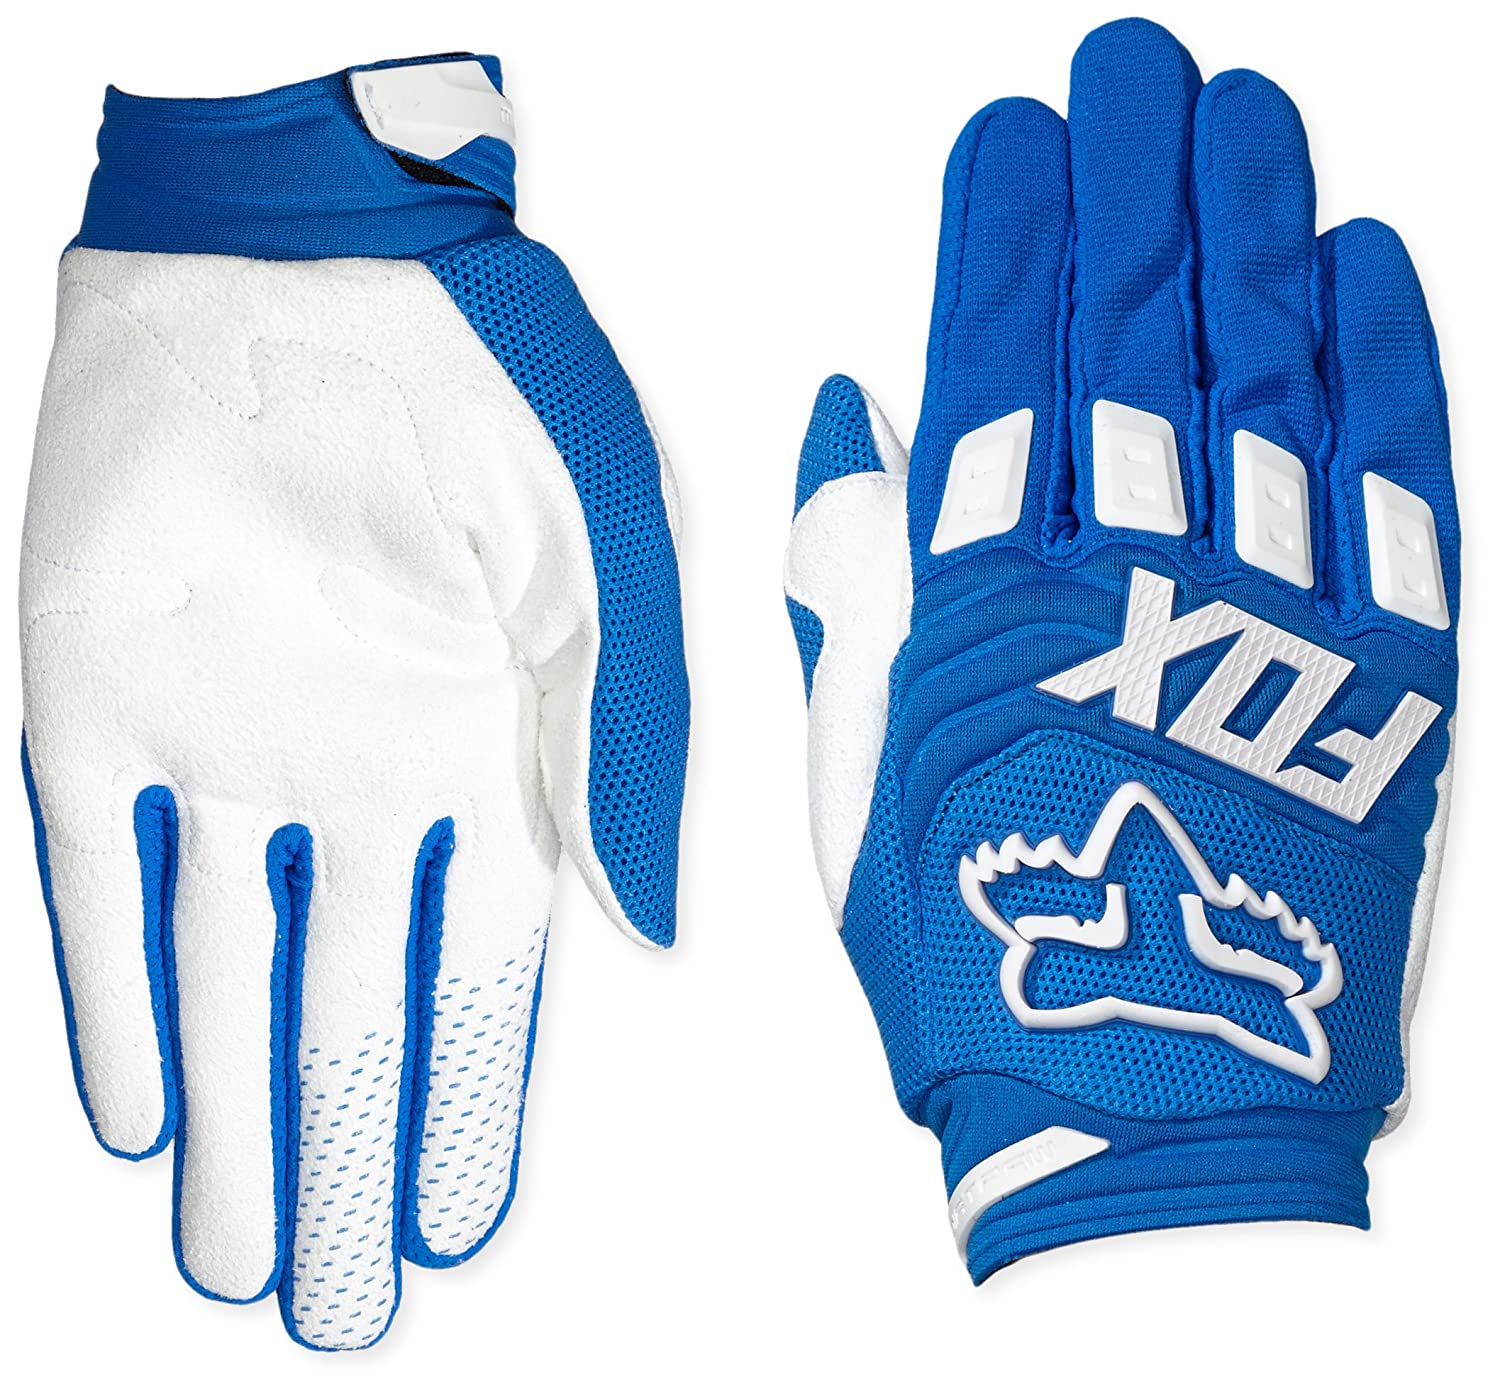 Motorcycle gloves guide - Best Motorcycle Gloves